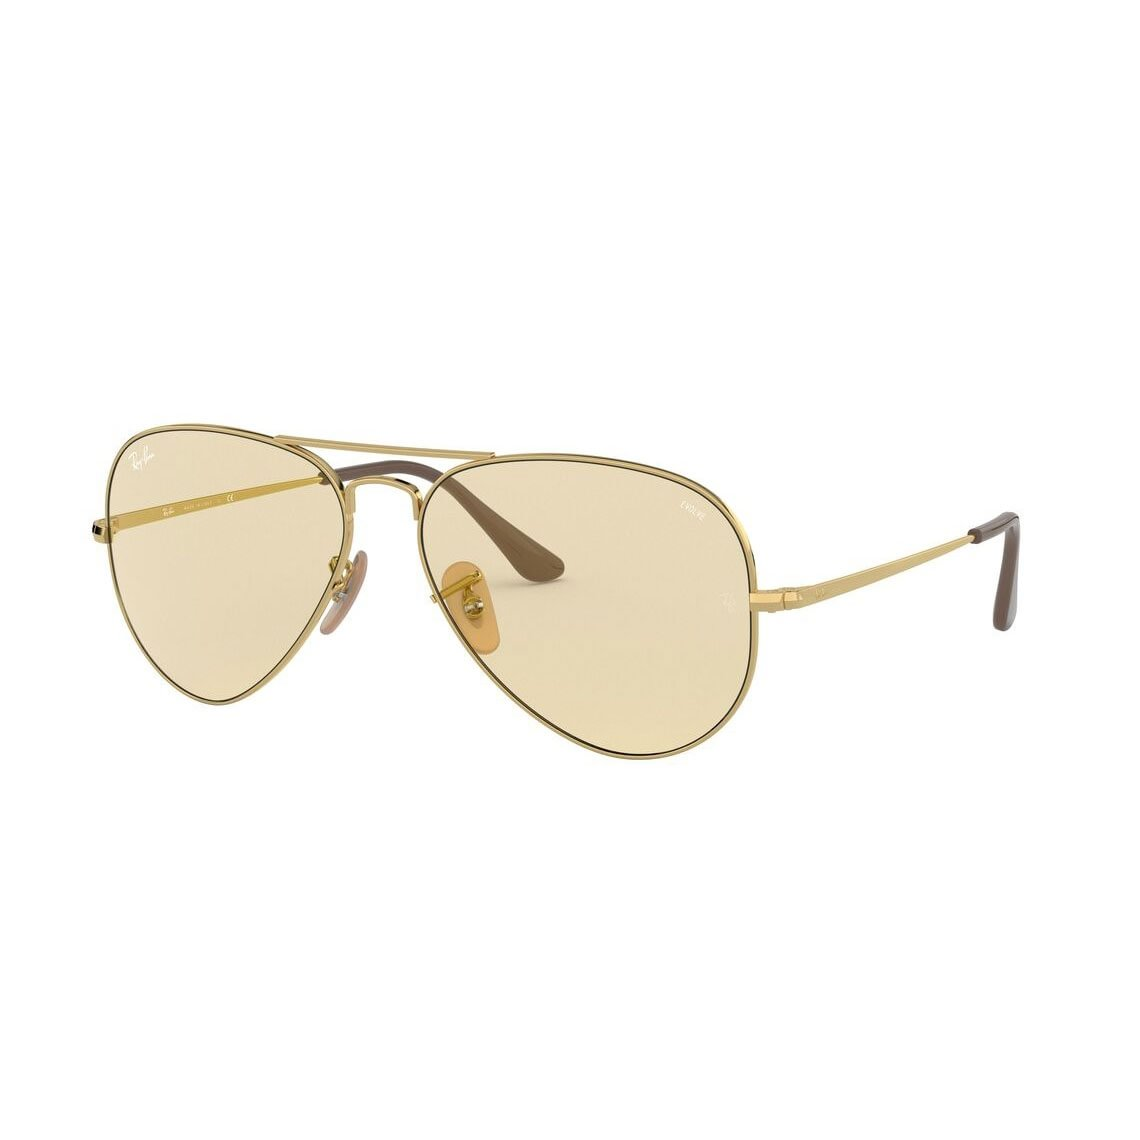 Ray-Ban Aviator Metal II RB3689 Solid Evolve 001/T2 5514